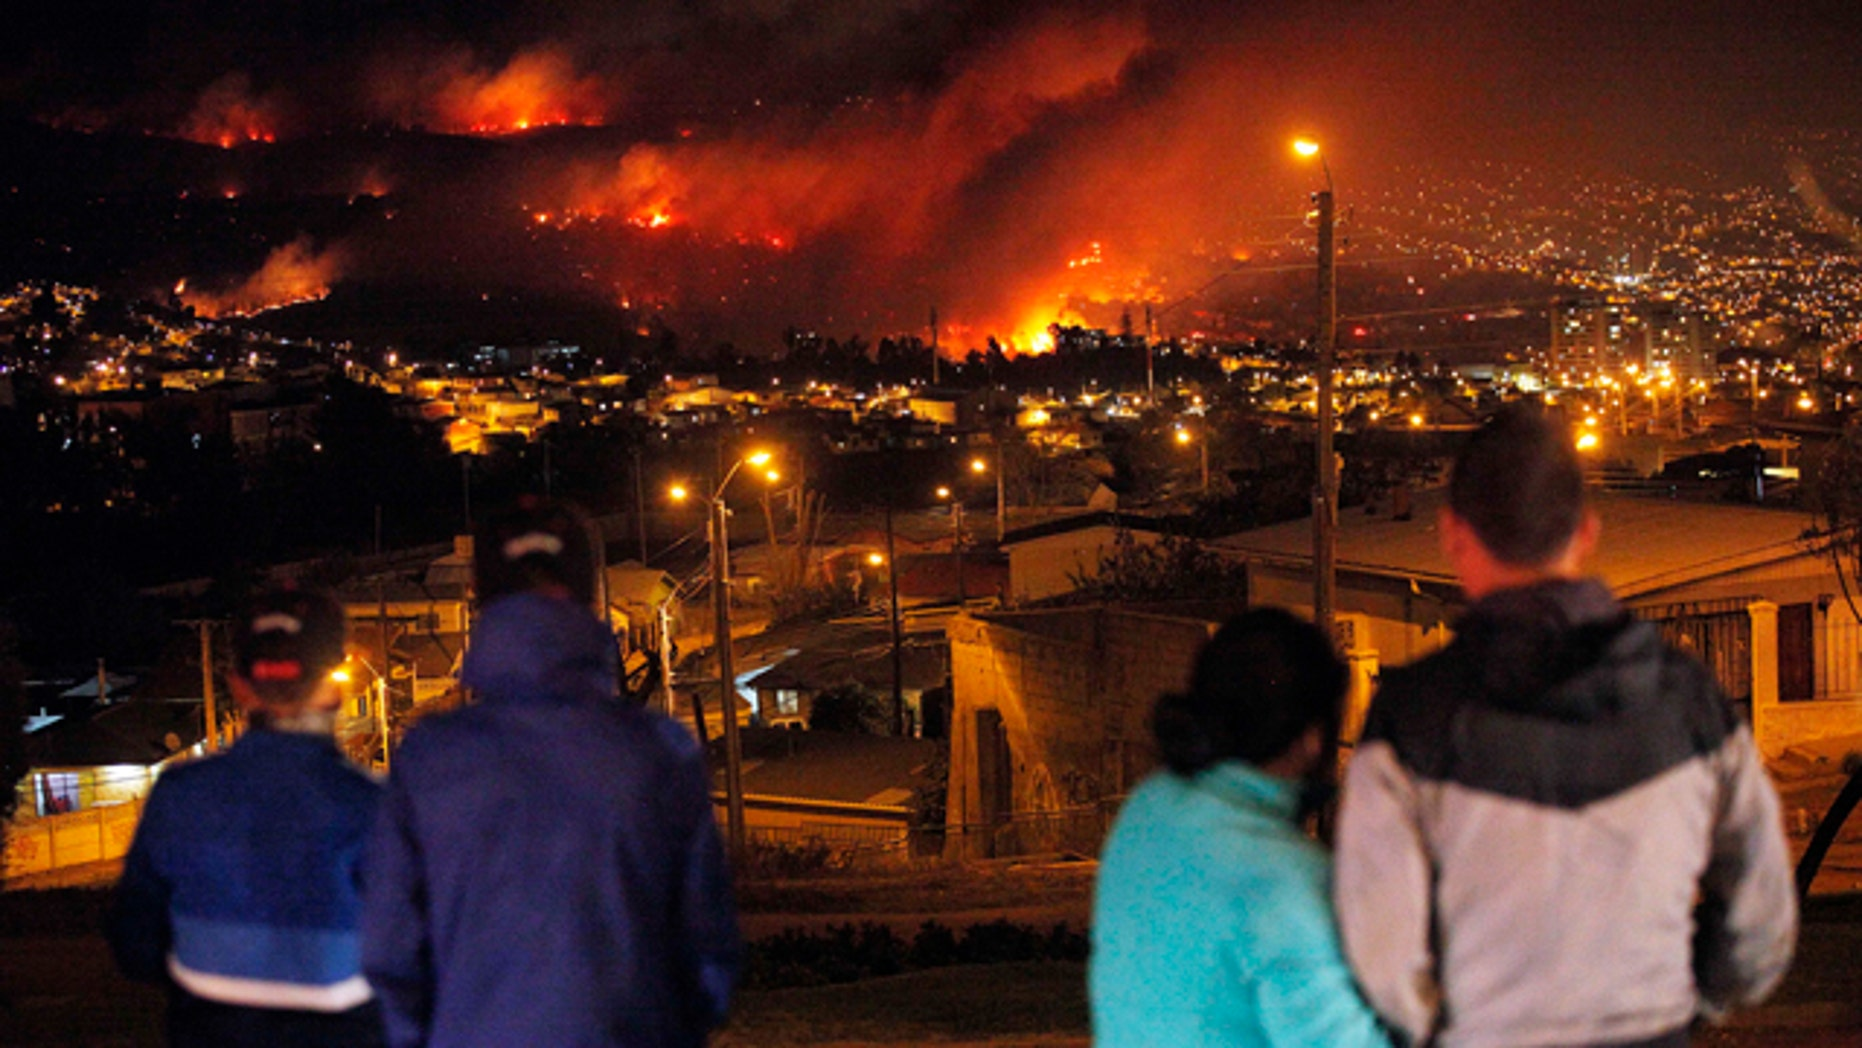 April 13, 2014: People watch as a forest fire rages towards urban areas in the city of Valparaiso, Chile. Authorities say the first fire has destroyed at least 500 homes and is forcing evacuations. ( AP Photo/ Luis Hidalgo)